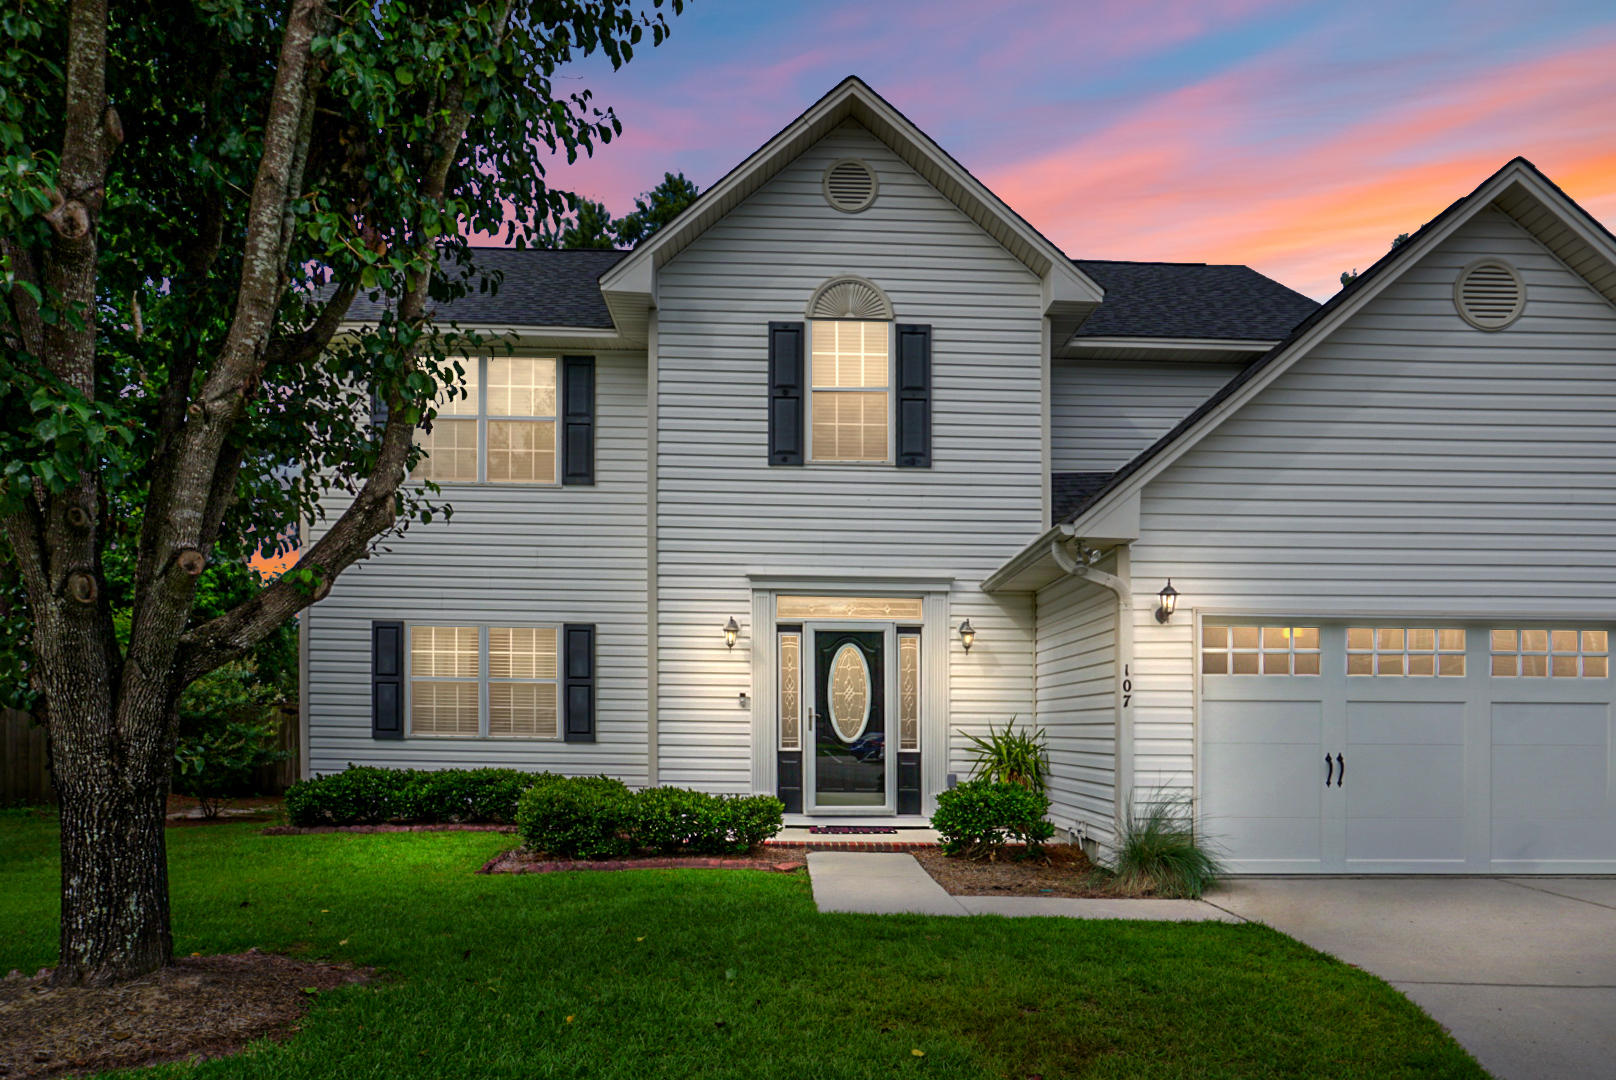 107 Chinaberry Court Goose Creek, Sc 29445